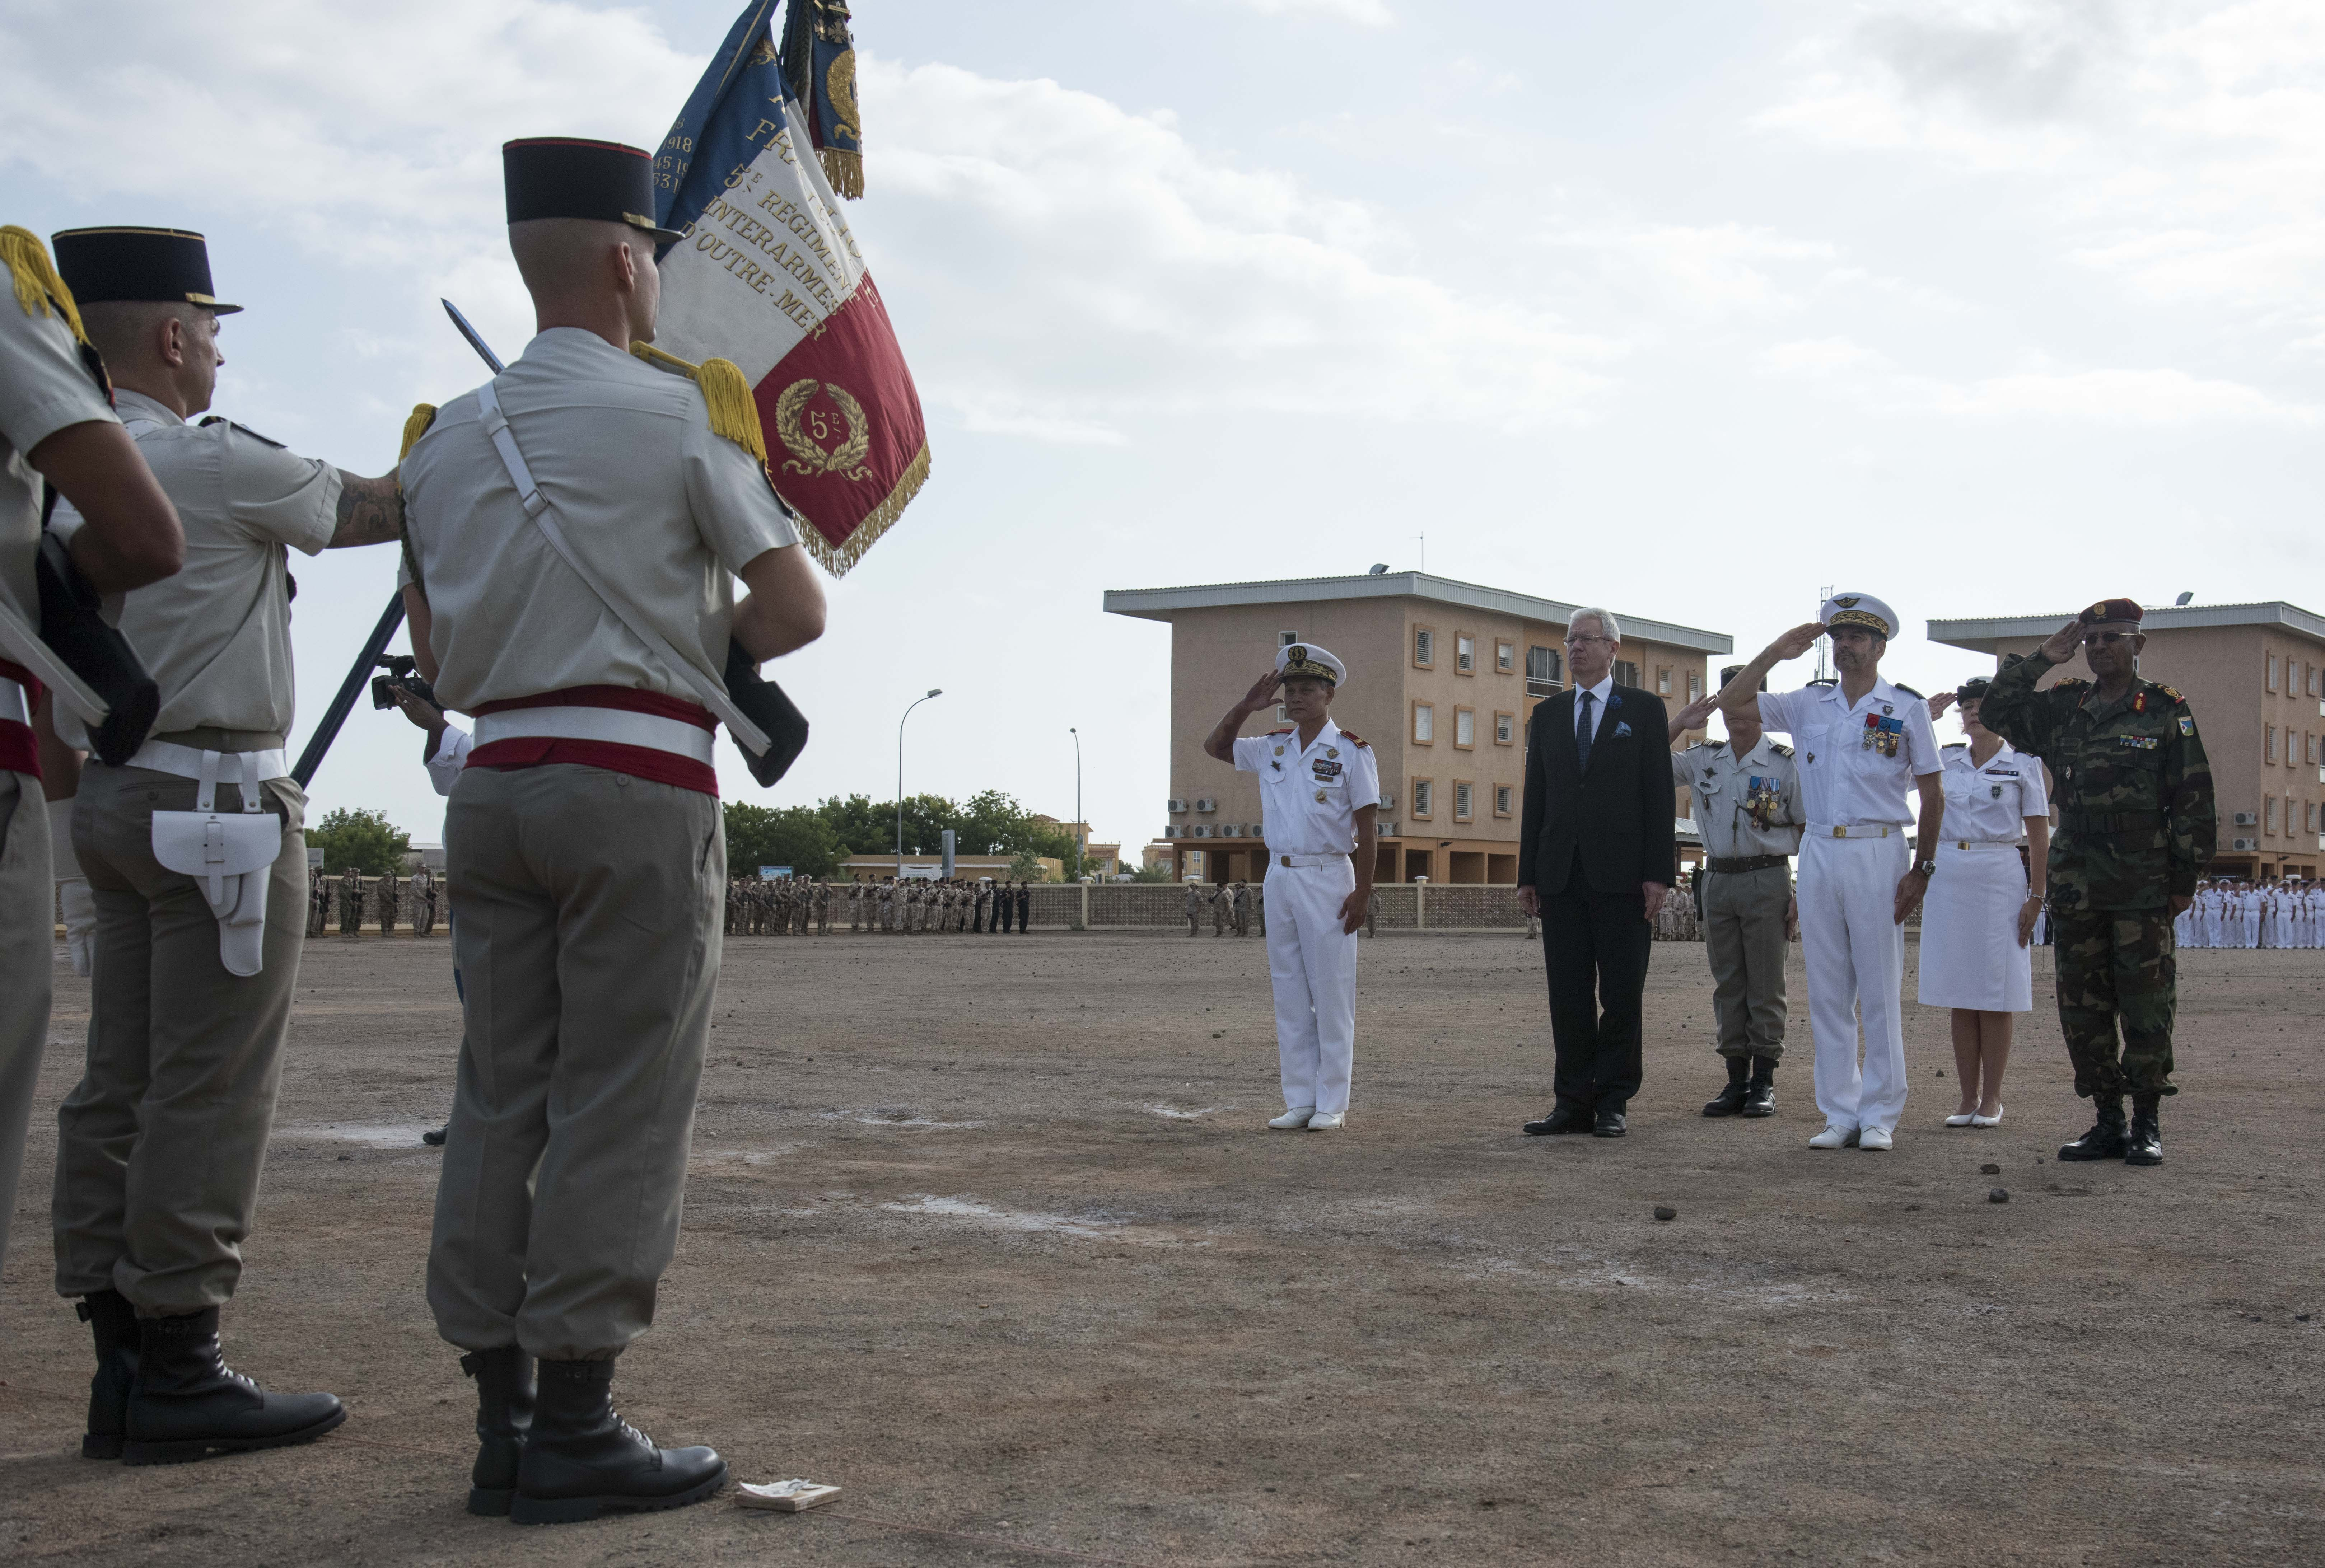 The officiating party salutes the colors of the 5th Foreign Infantry Regiment during the Armistice Day ceremony at the French Marine Base, Nov. 11, 2015. The ceremony commemorated the end of hostilities in World War I.